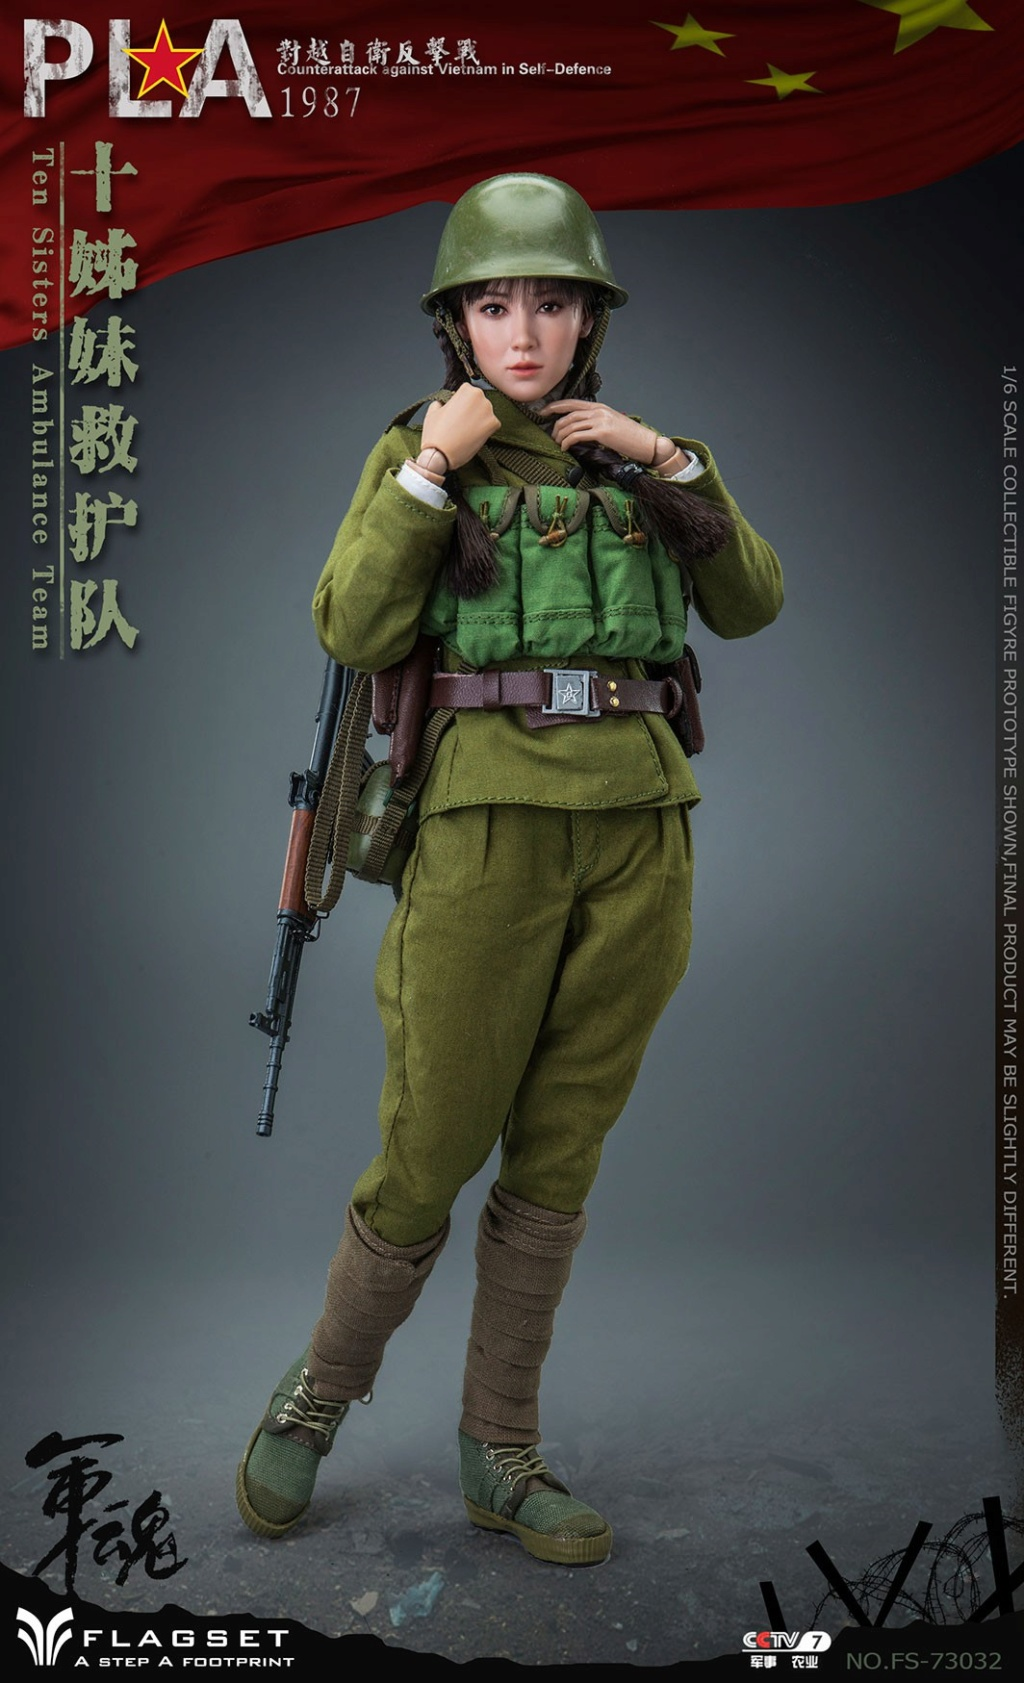 CounterAttack - NEW PRODUCT: Flagset: 1/6 counterattack against Vietnam-female soldiers of the ten sisters rescue team of the Chinese People's Liberation Army (FS73032#) 06535910